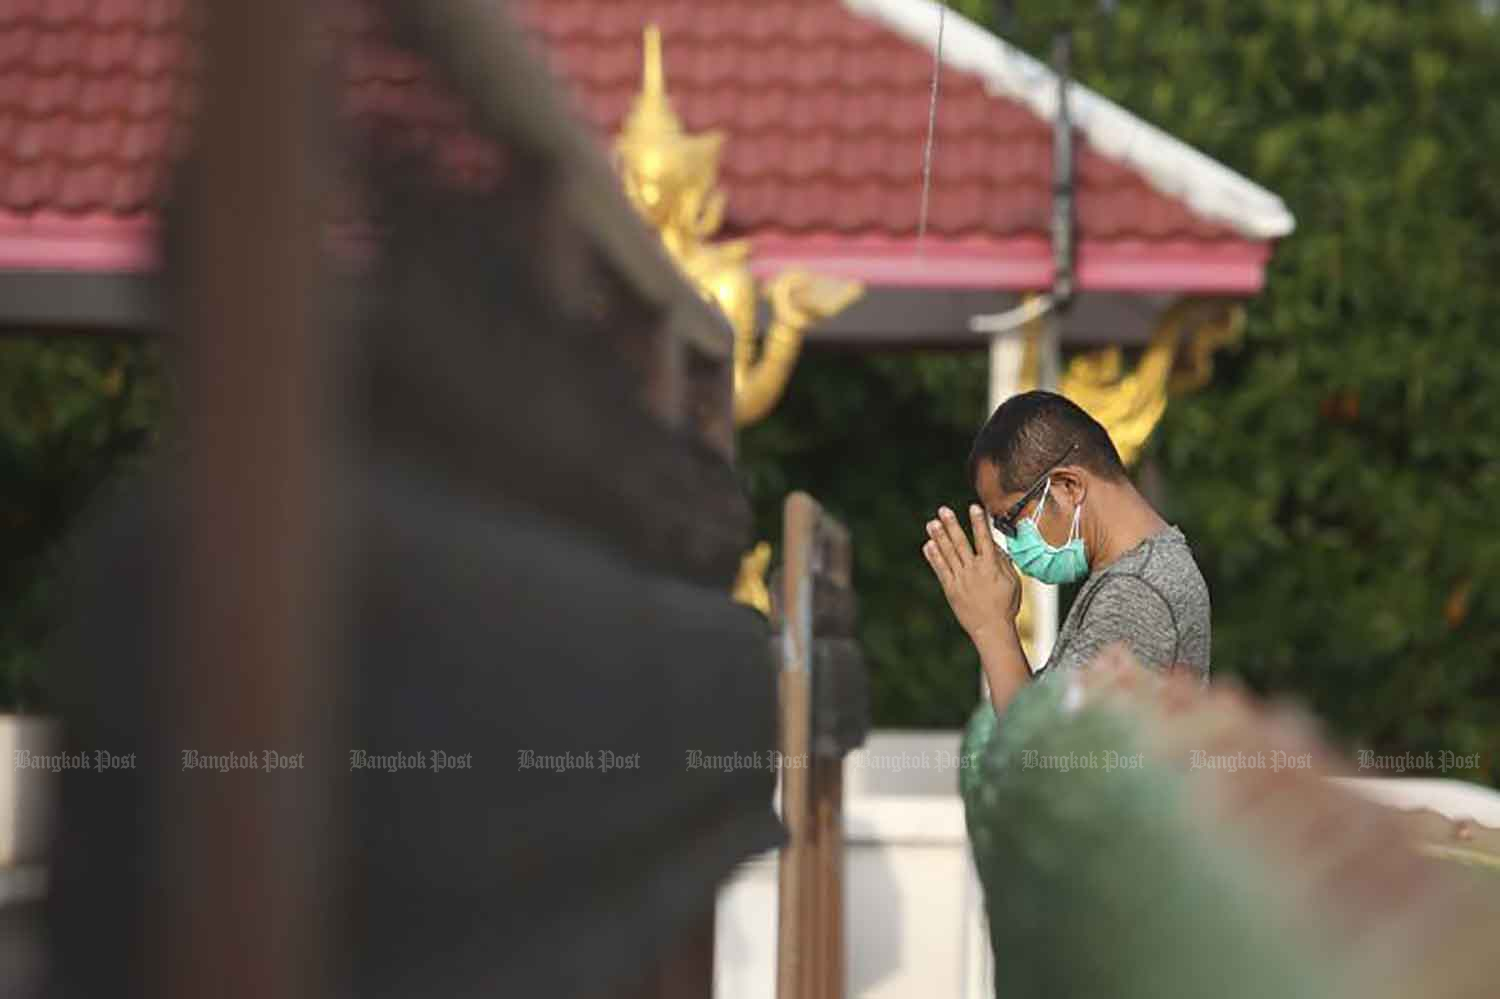 A man wearing a double layer of face masks prays at Wat Bang Chak in Nonthaburi province on Wednesday, when 47 new Covid-19 fatalities and 3,323 new cases were reported. (Photo: Pattarapong Chatpattarasill)